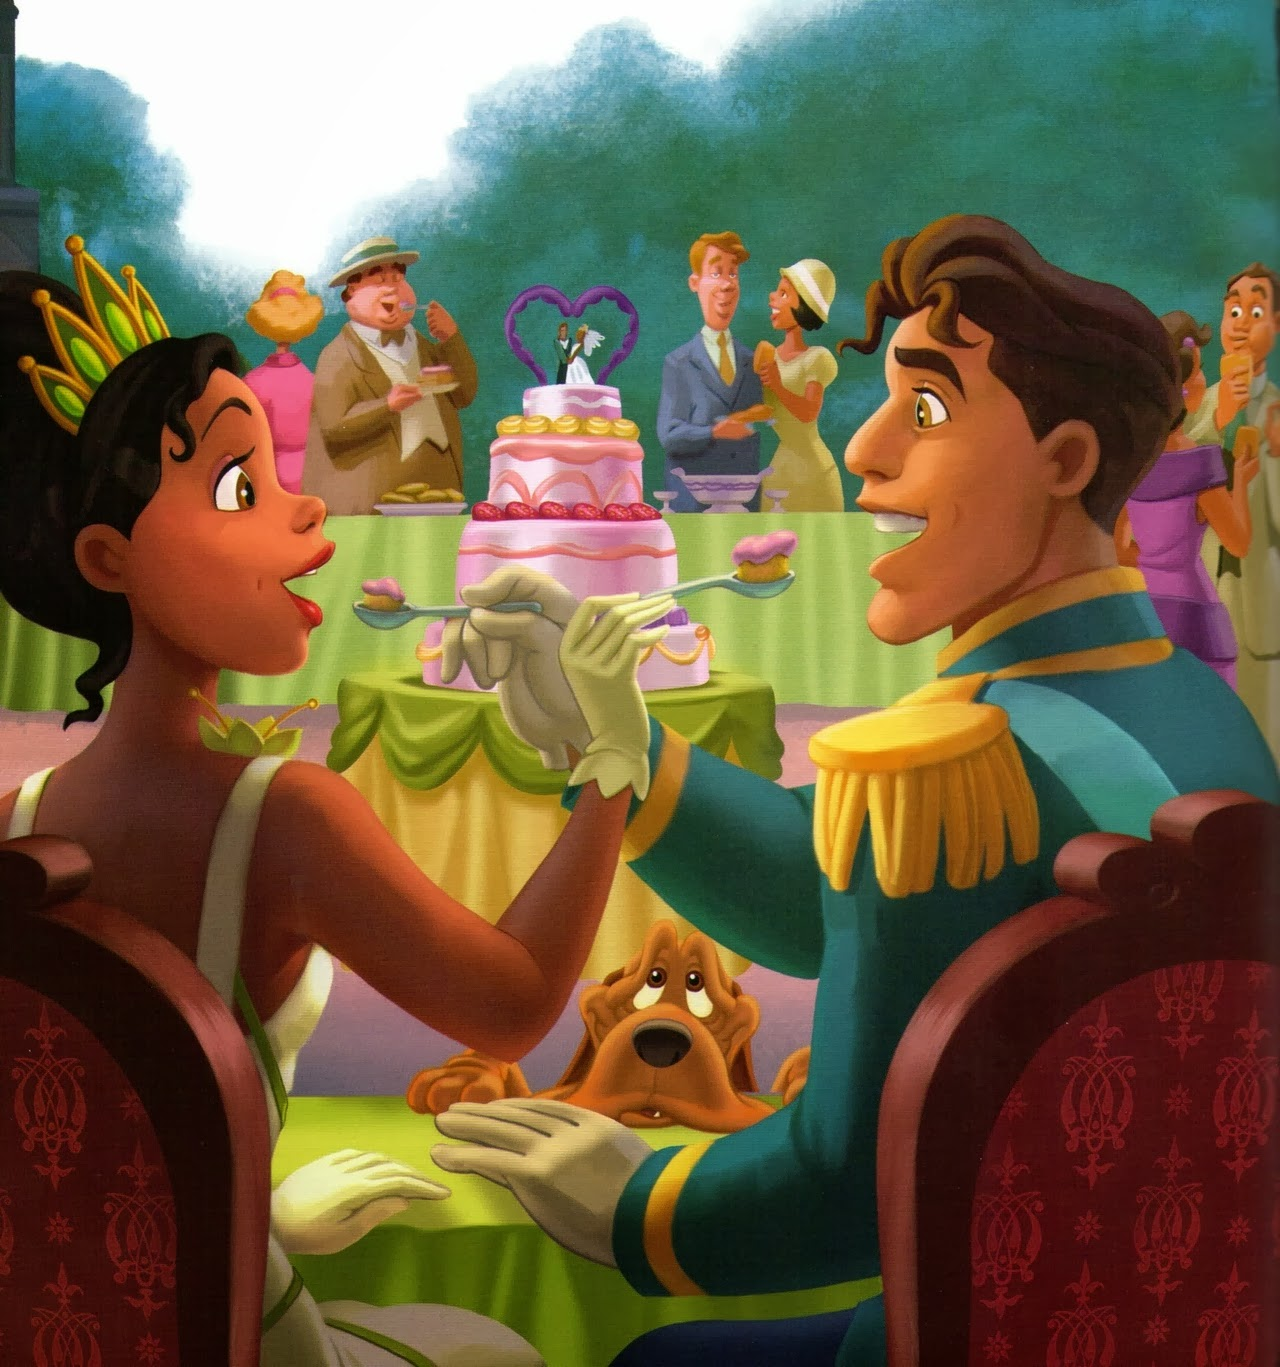 Tiana and naveen after wedding the princess and the frog wallpaper ...